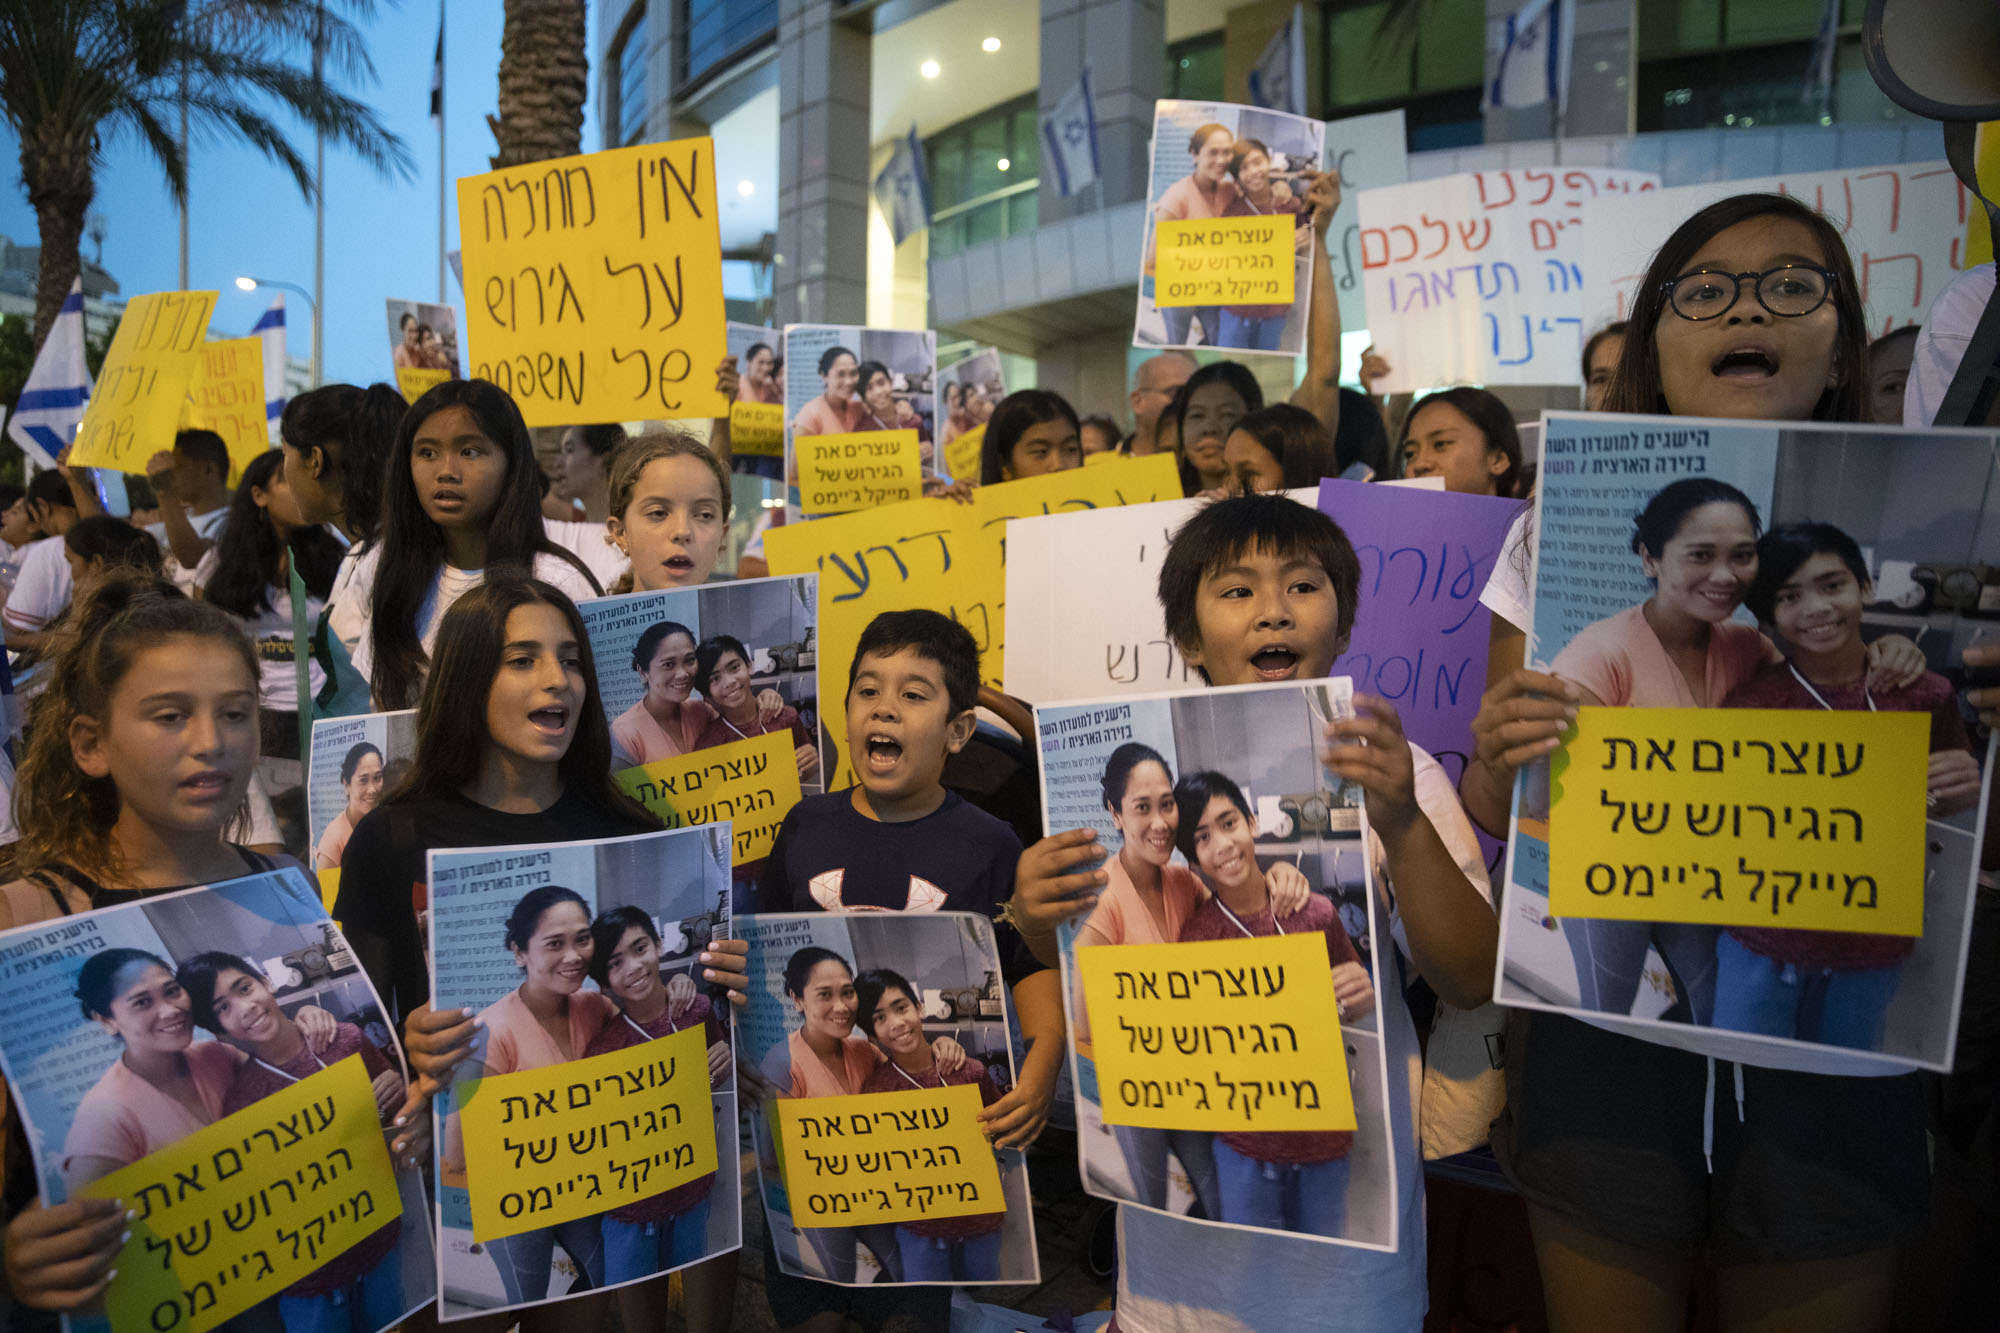 Filipino schoolchildren protest with their classmates against the deportation of foreign workers and their children in front of the Interior Ministry in Tel Aviv. The posters read 'Stopping the deportation of Michael James.' July 22, 2019. (Oren Ziv/Activestills.org)